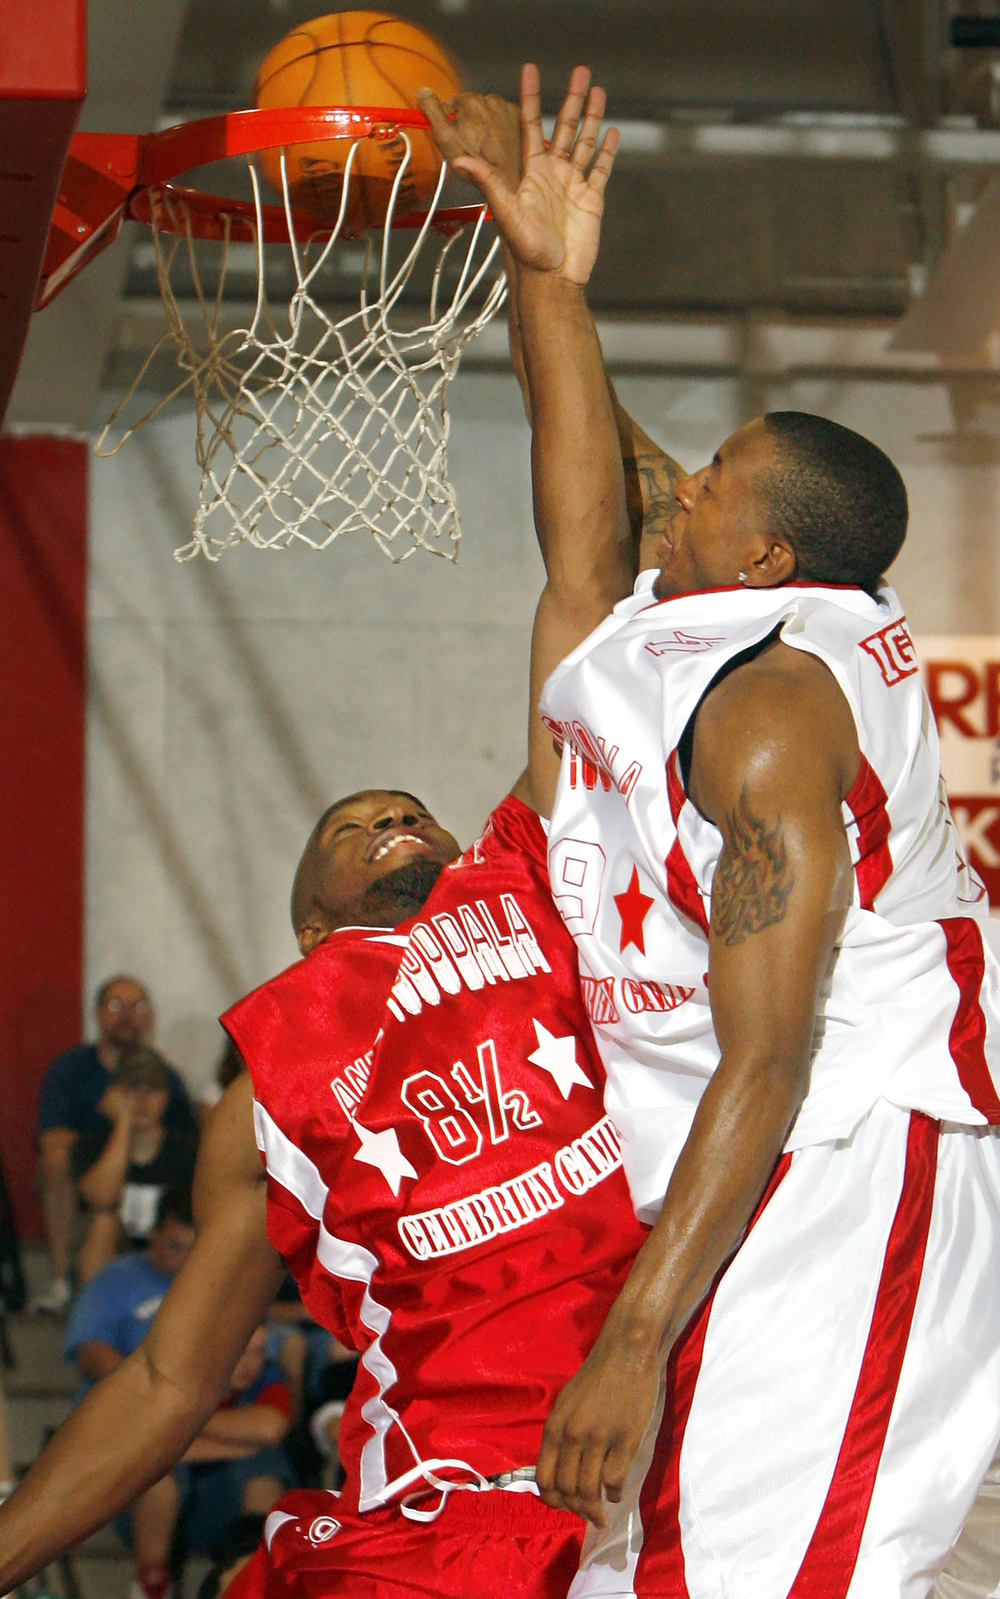 Andre Iguodala dunks over the player known as Big Head during the second annual Andre Iguodala Celebrity Basketball Game at Lincoln Land Community College June 24, 2006. Ted Schurter/The State Journal-Register